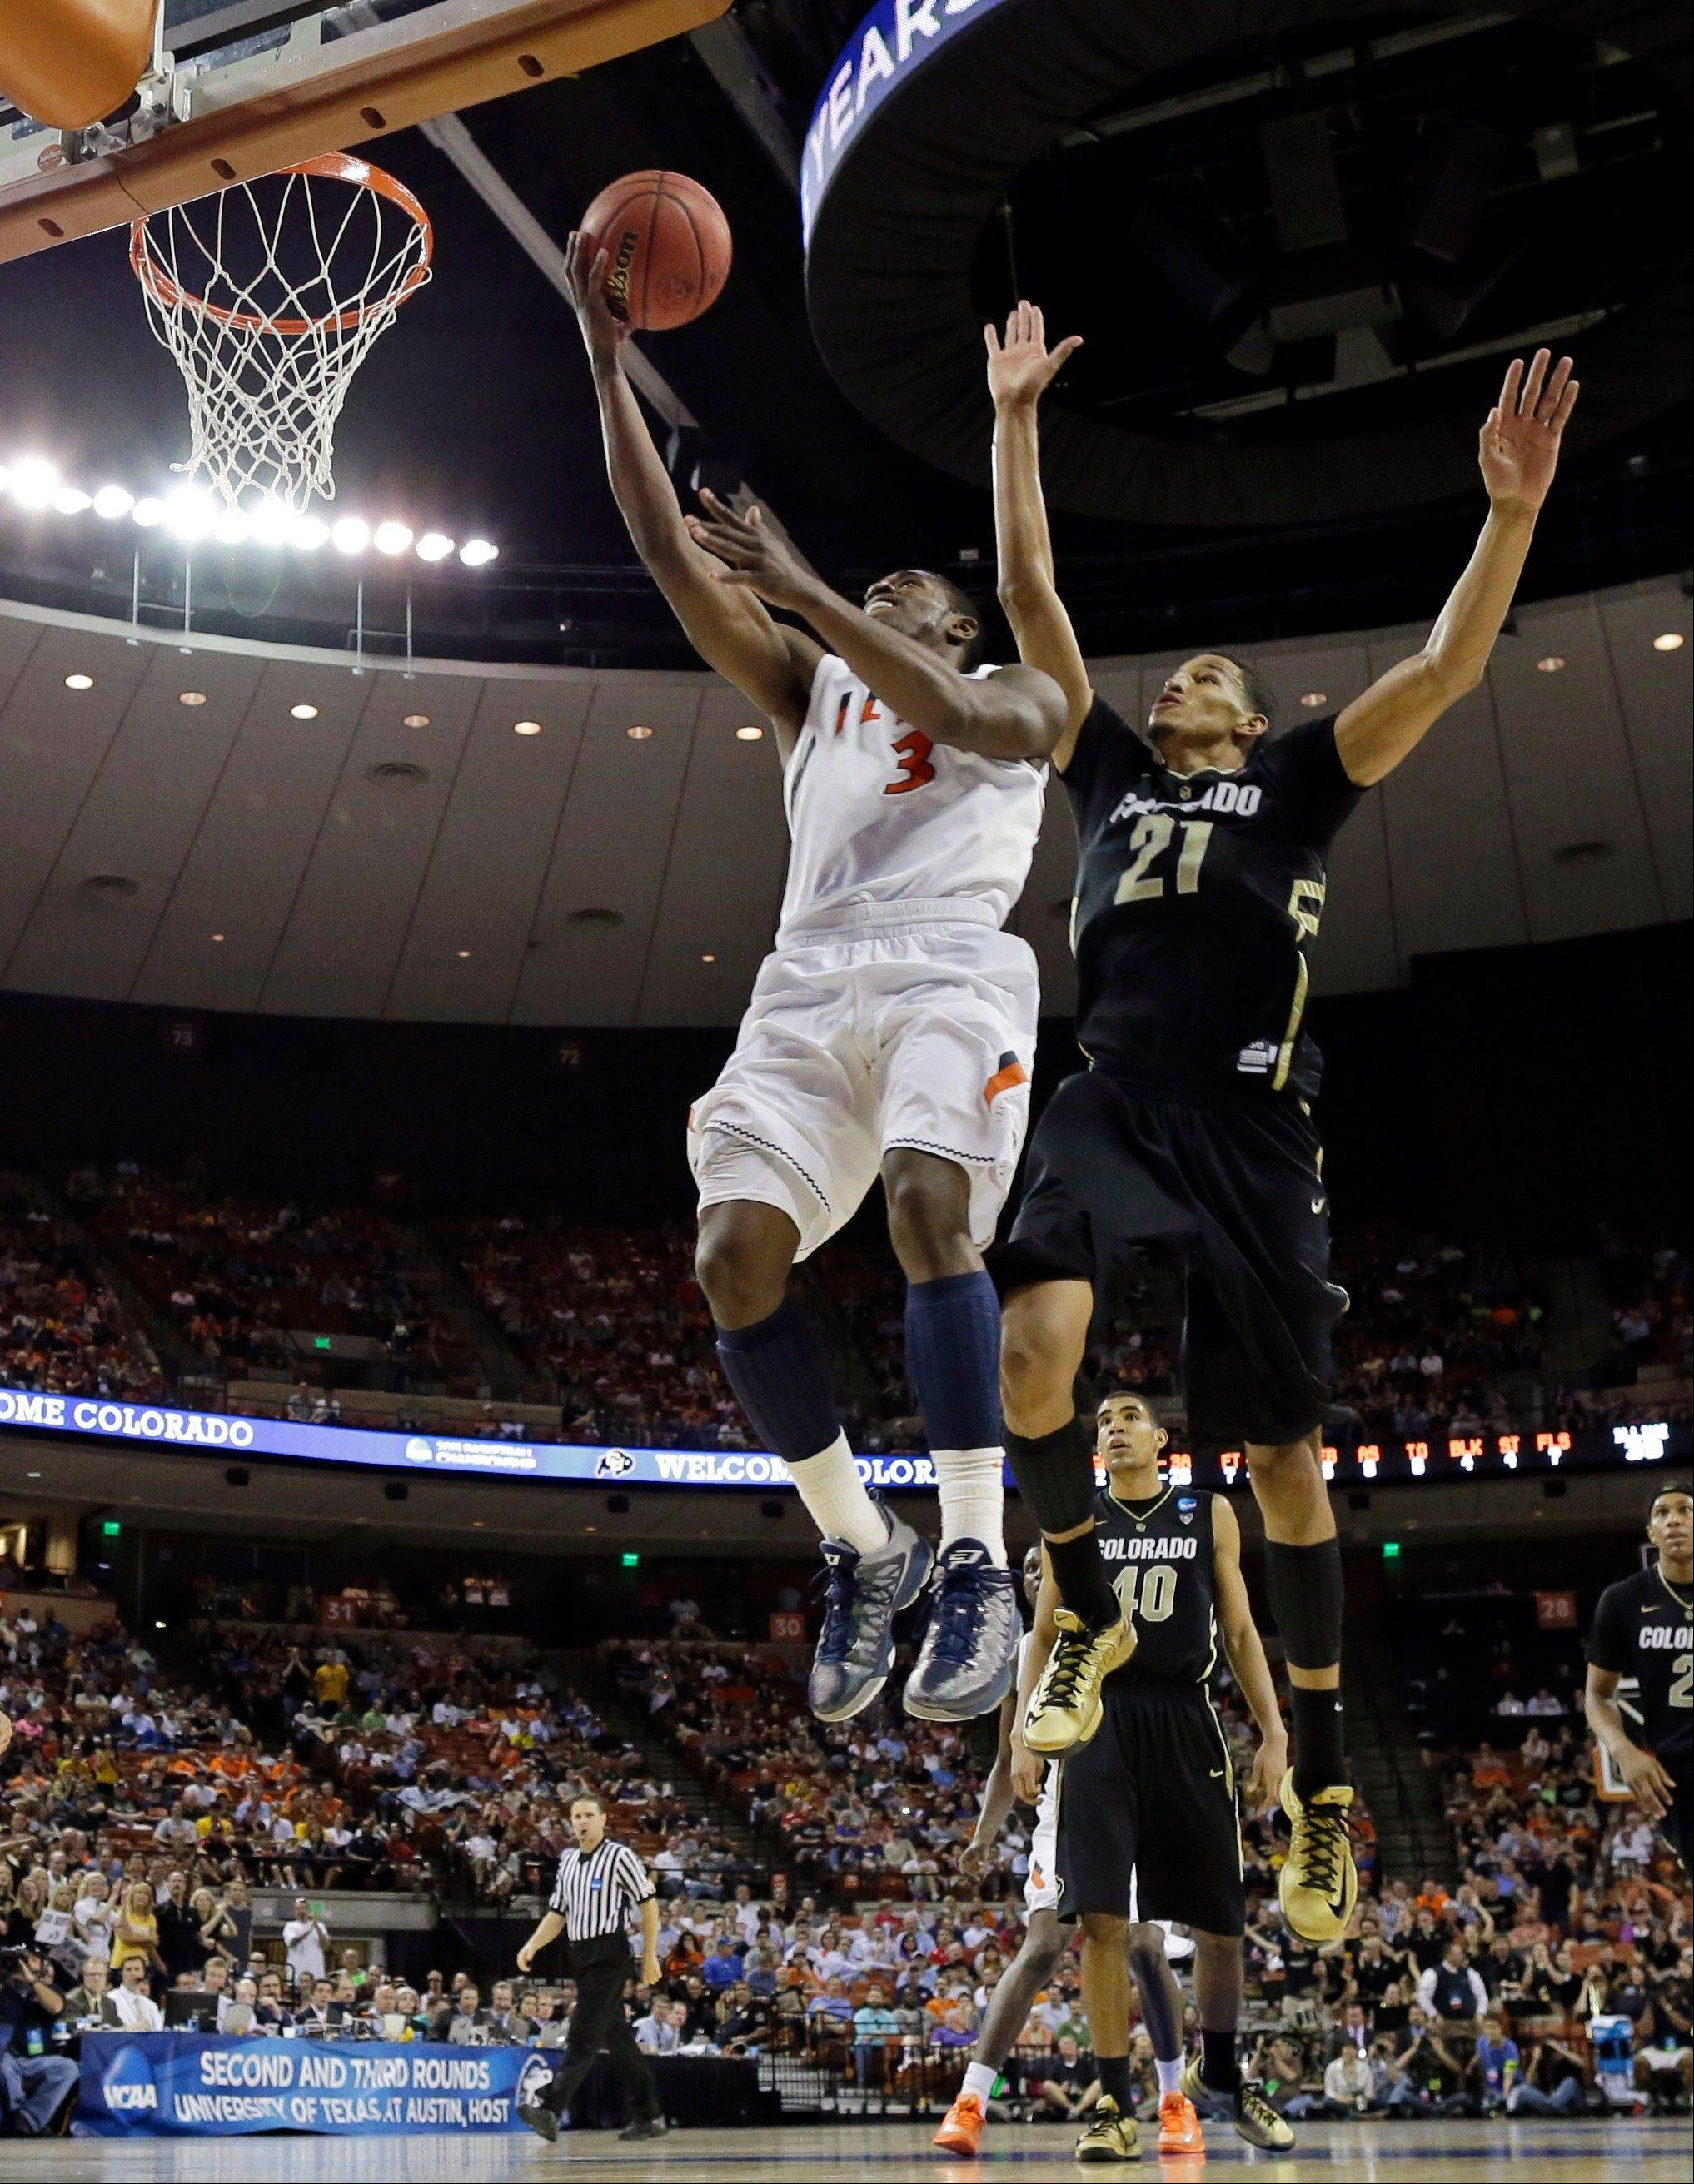 Illinois' Brandon Paul (3) goes up for a shot as Colorado's Andre Roberson (21) defends during the second half of a second-round game of the NCAA college basketball tournament Friday, March 22, 2013, in Austin, Texas. Illinois beat Colorado 57-49.